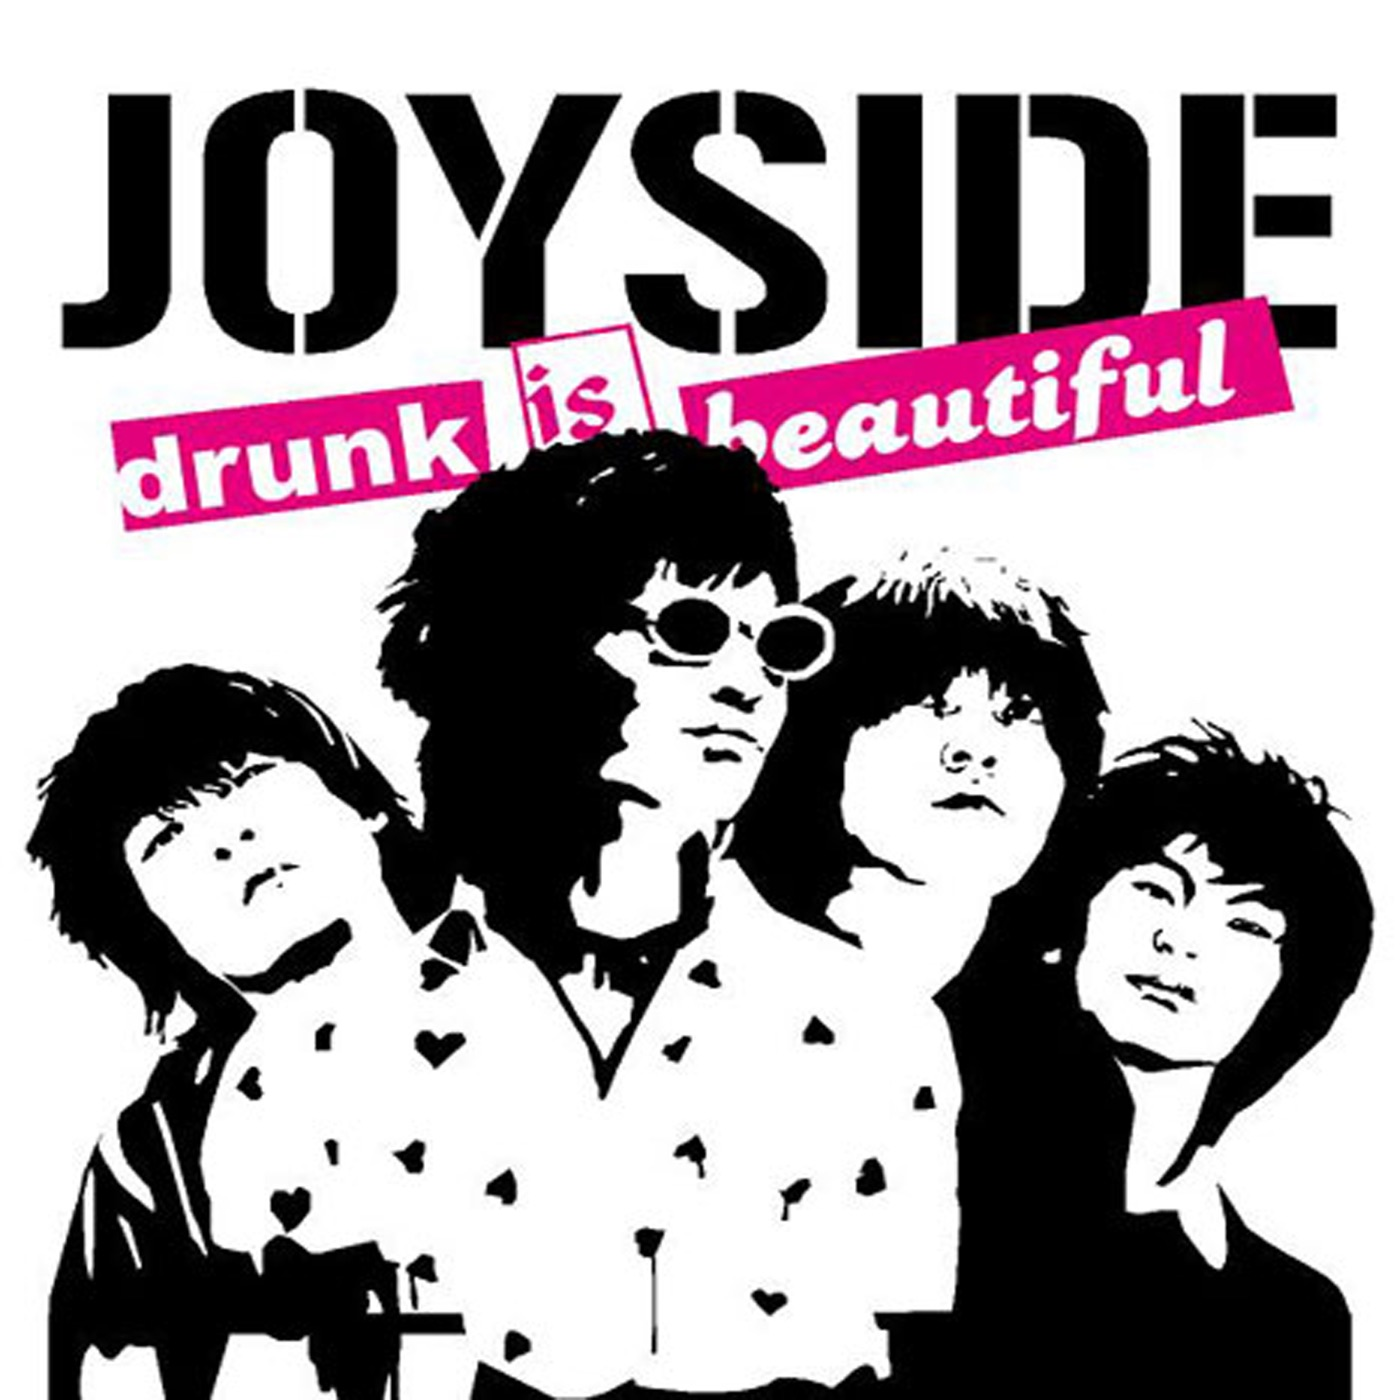 Joyside - Drunk Is Beautiful